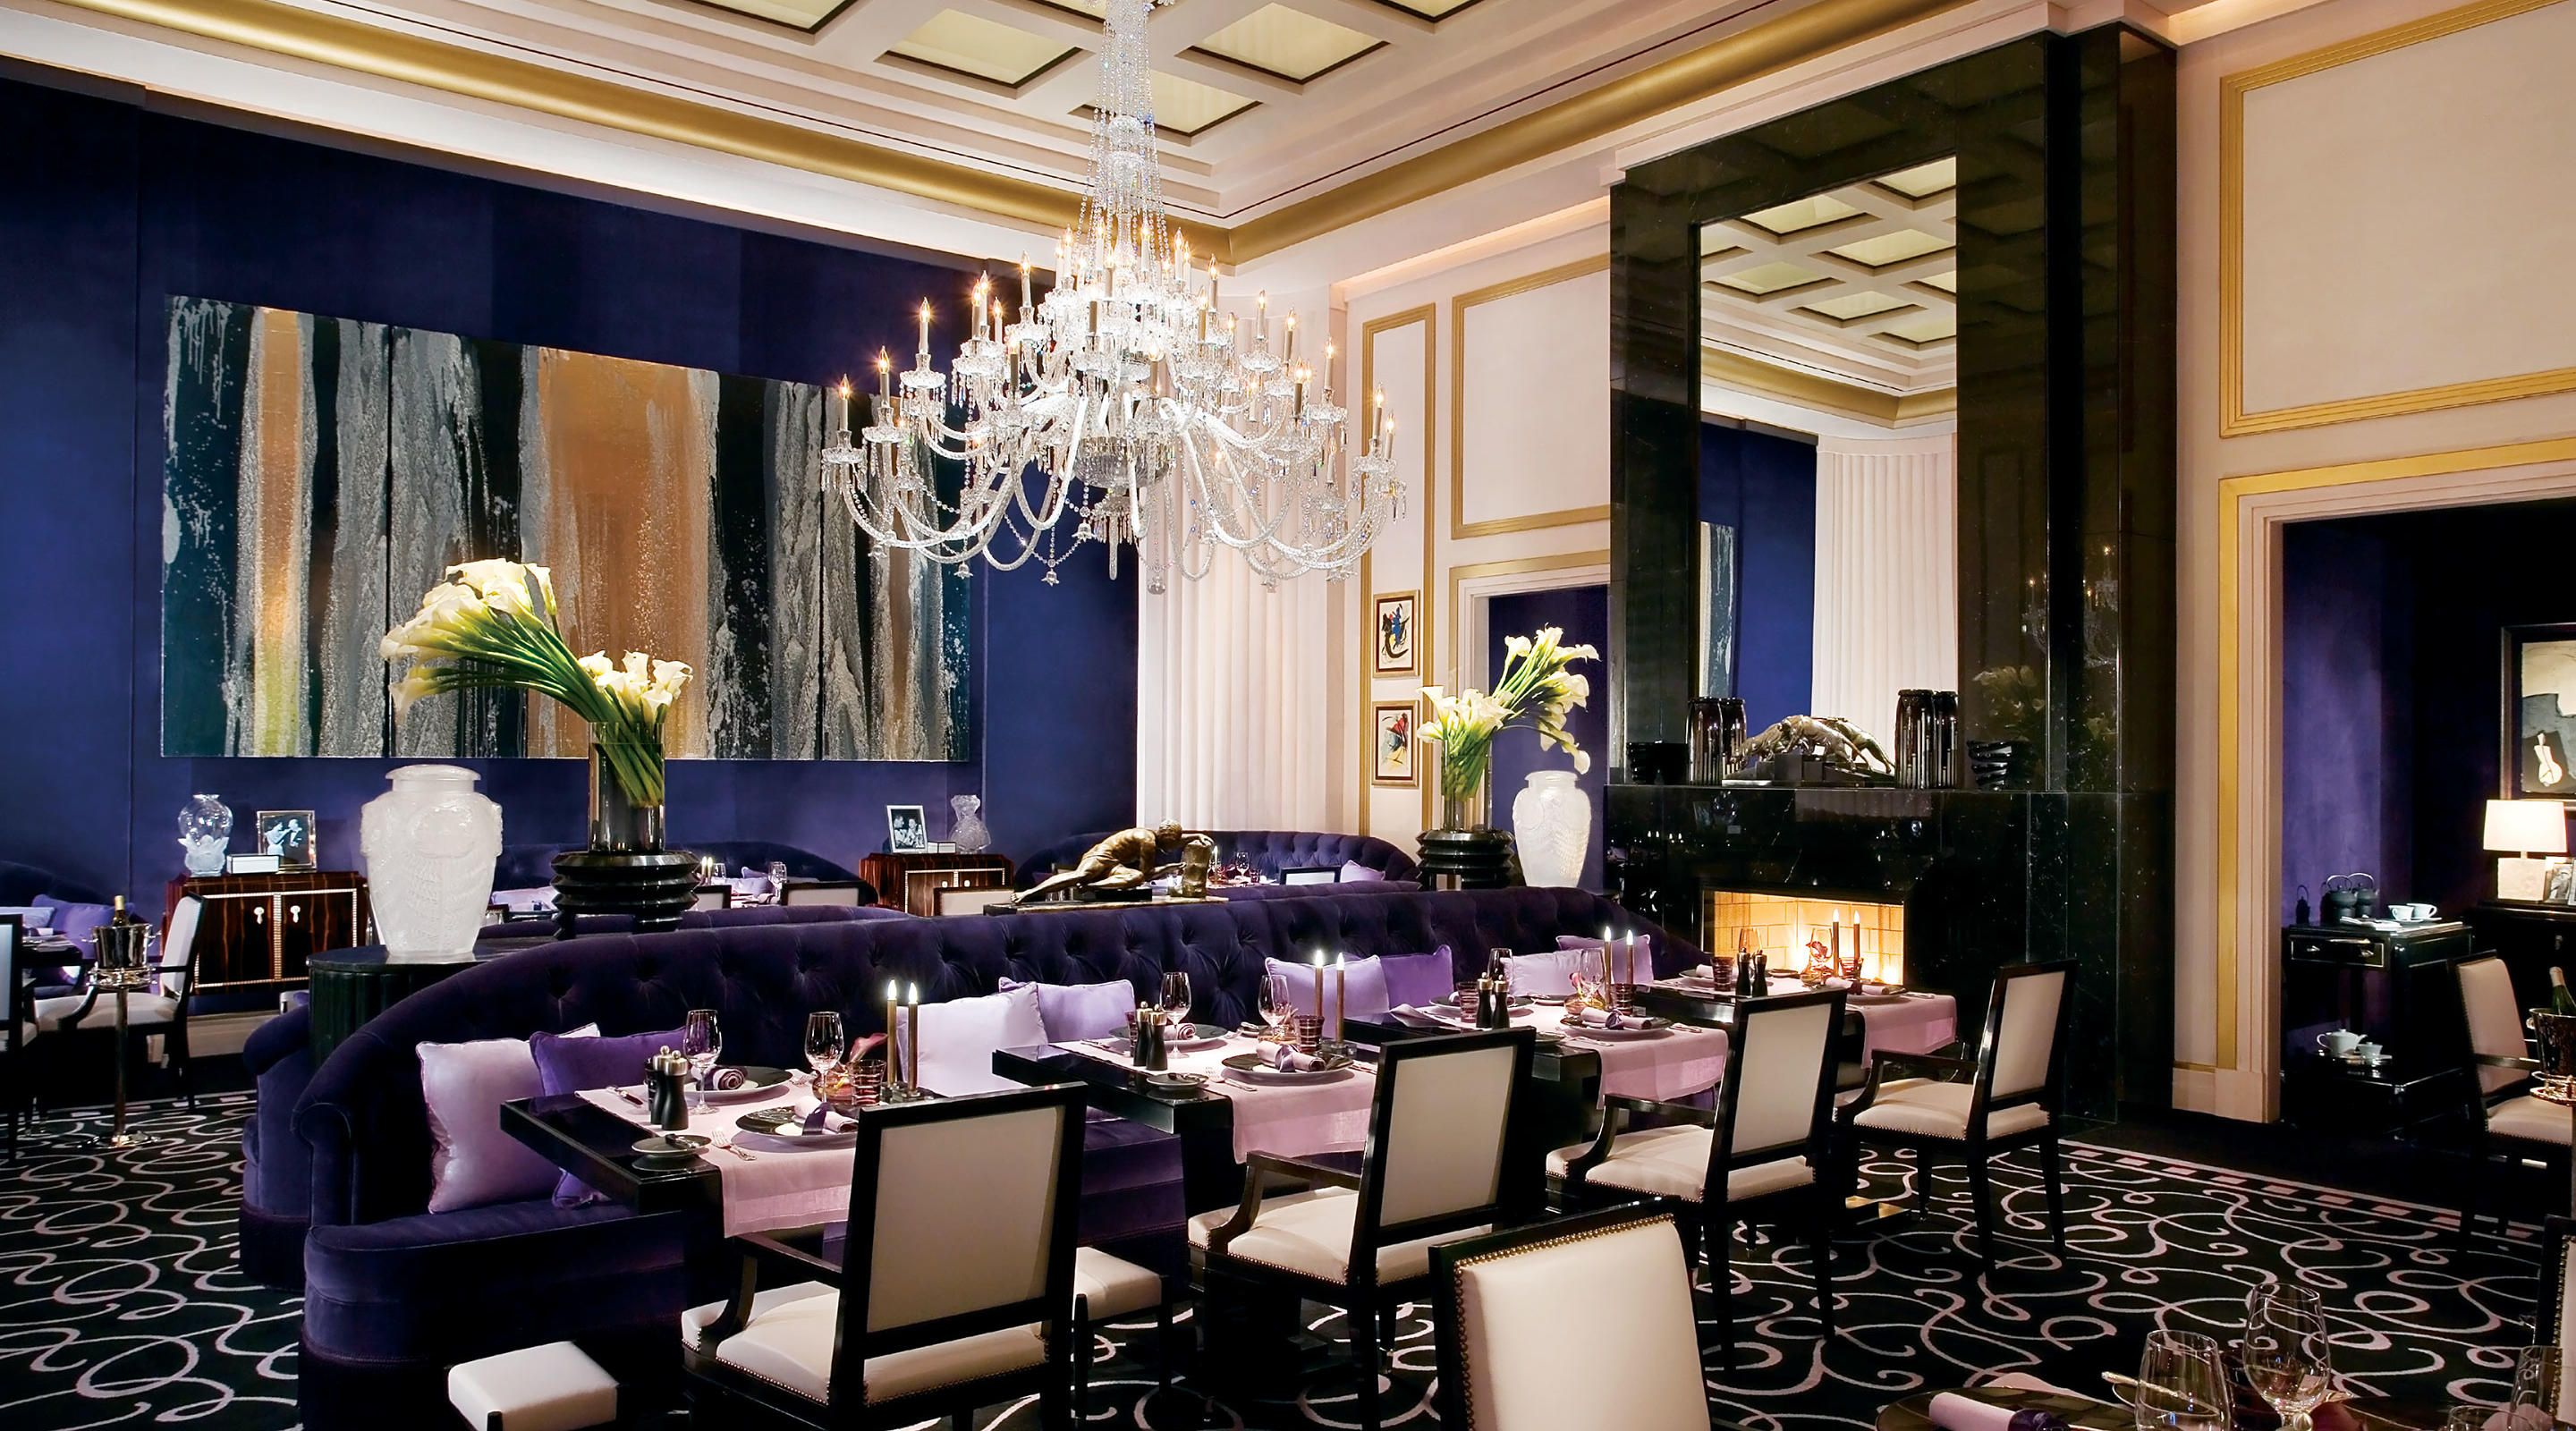 Private Dining Rooms In Las Vegas Reserve Your Table Today At Joël Robuchon And Enjoy An